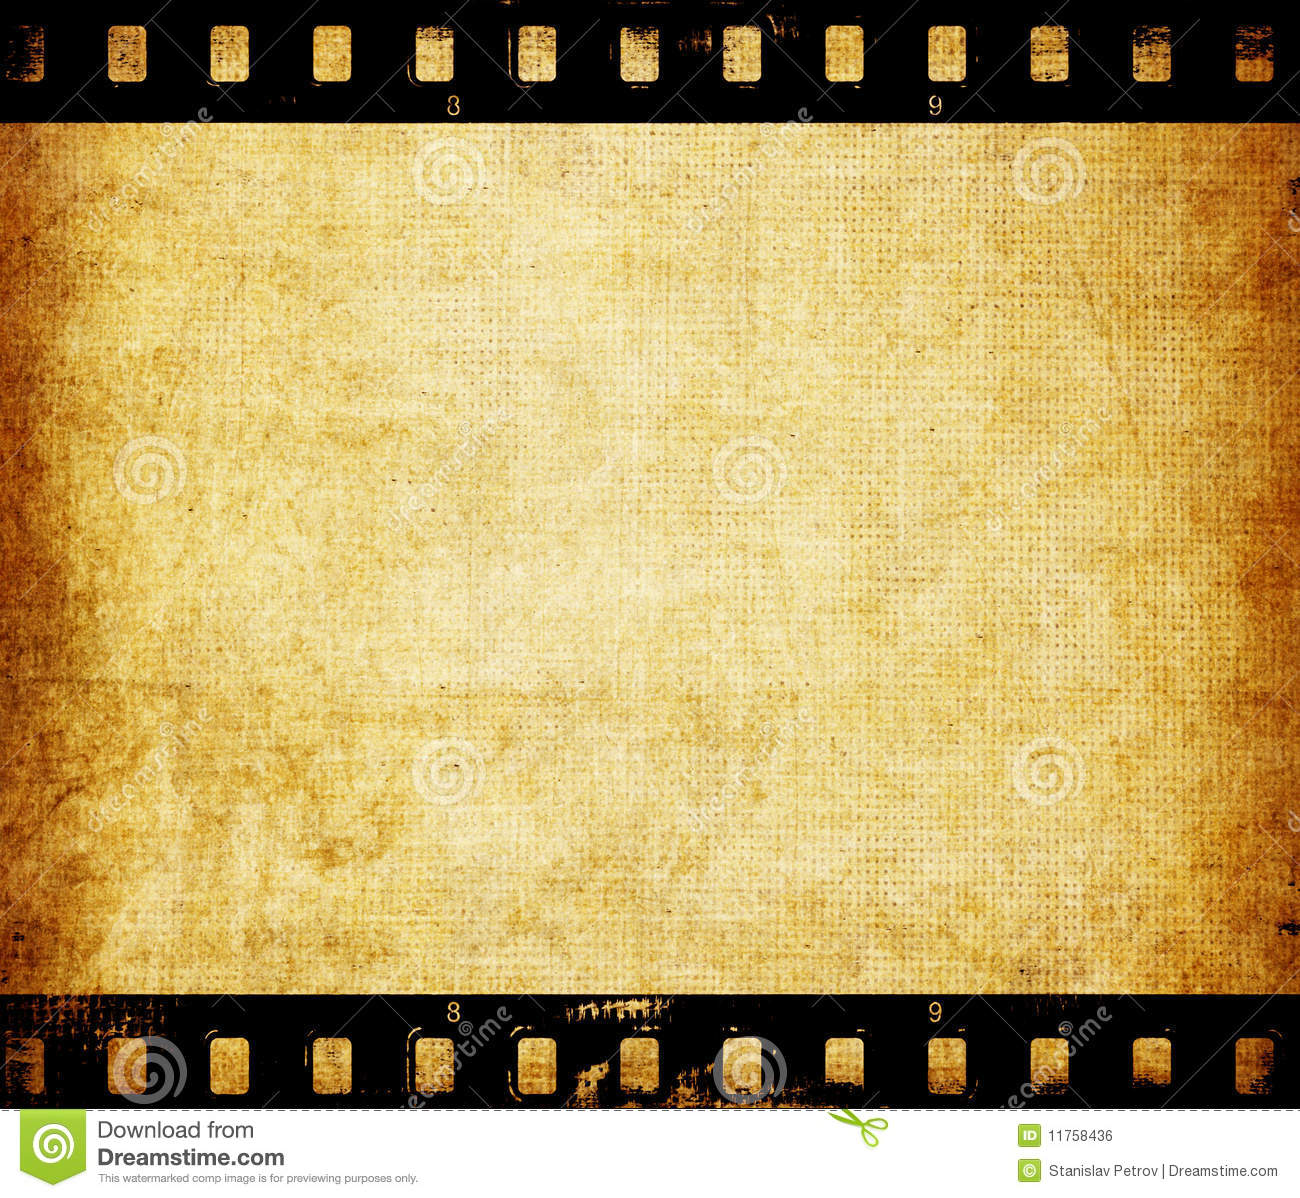 film strip wallpaper stock vector. illustration of modern - 6840442